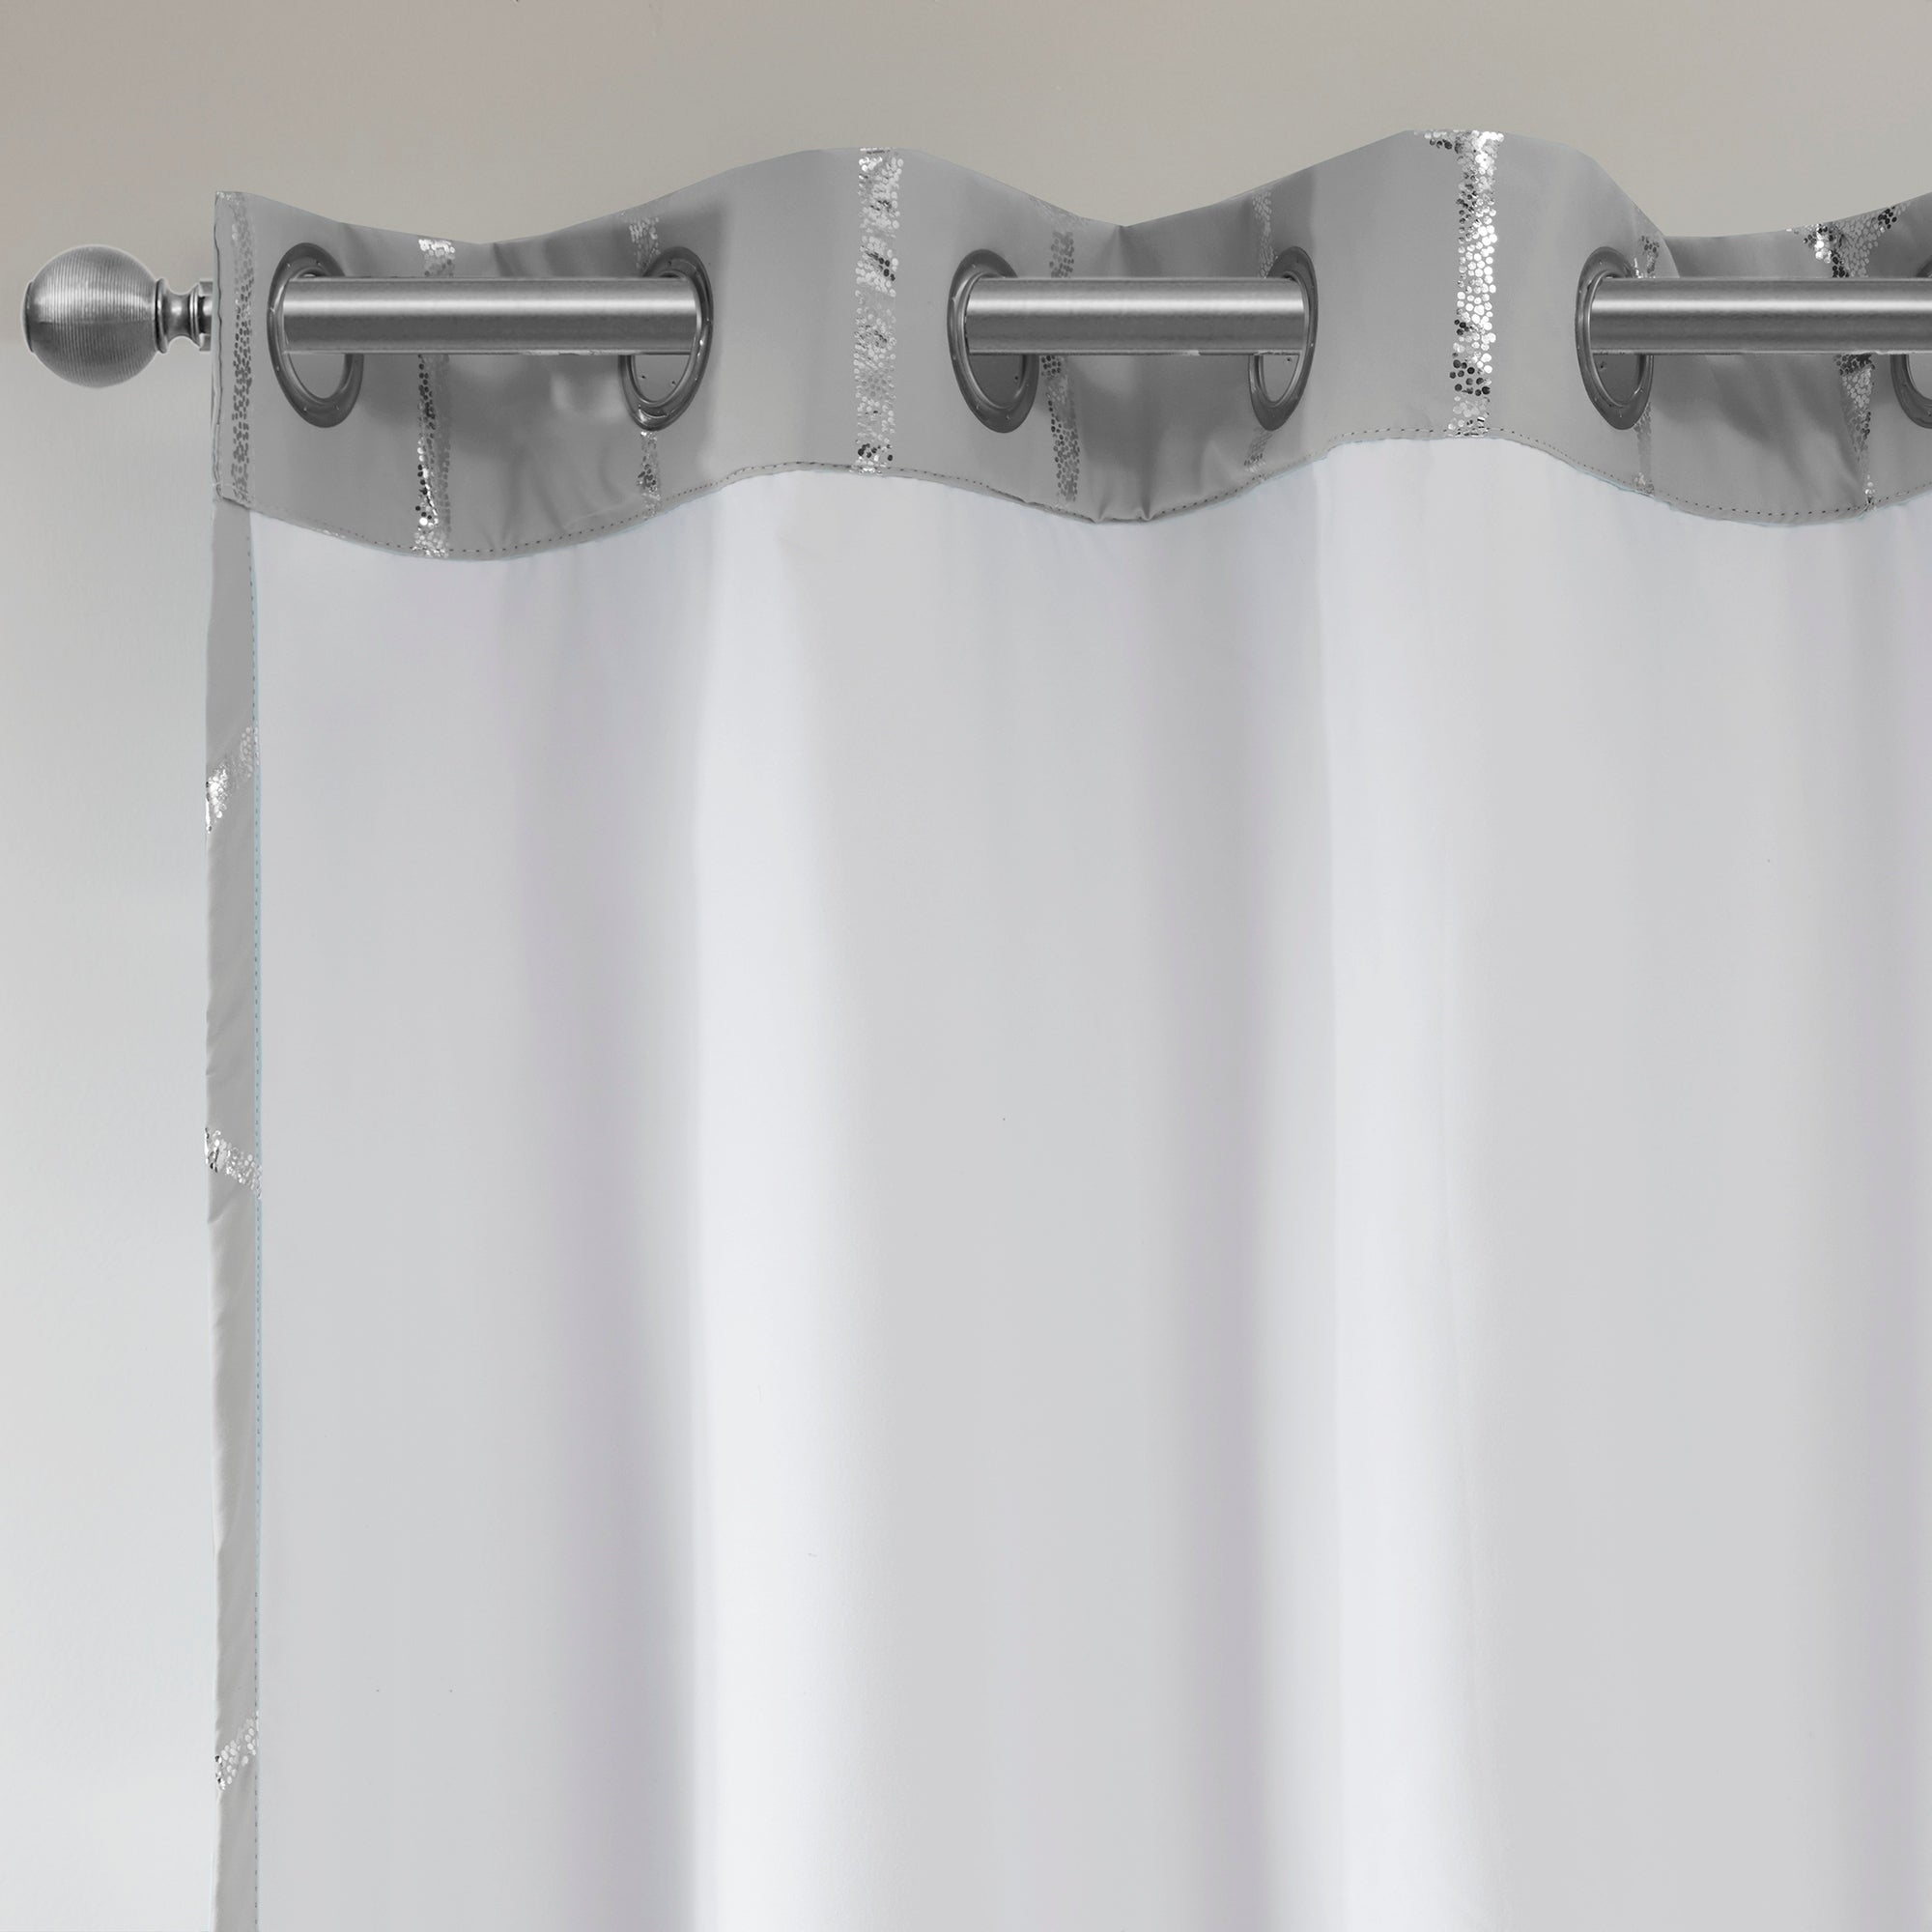 Intelligent Design Khloe Total Blackout Metallic Print Grommet Top Curtain Panel Within Total Blackout Metallic Print Grommet Top Curtain Panels (View 6 of 36)